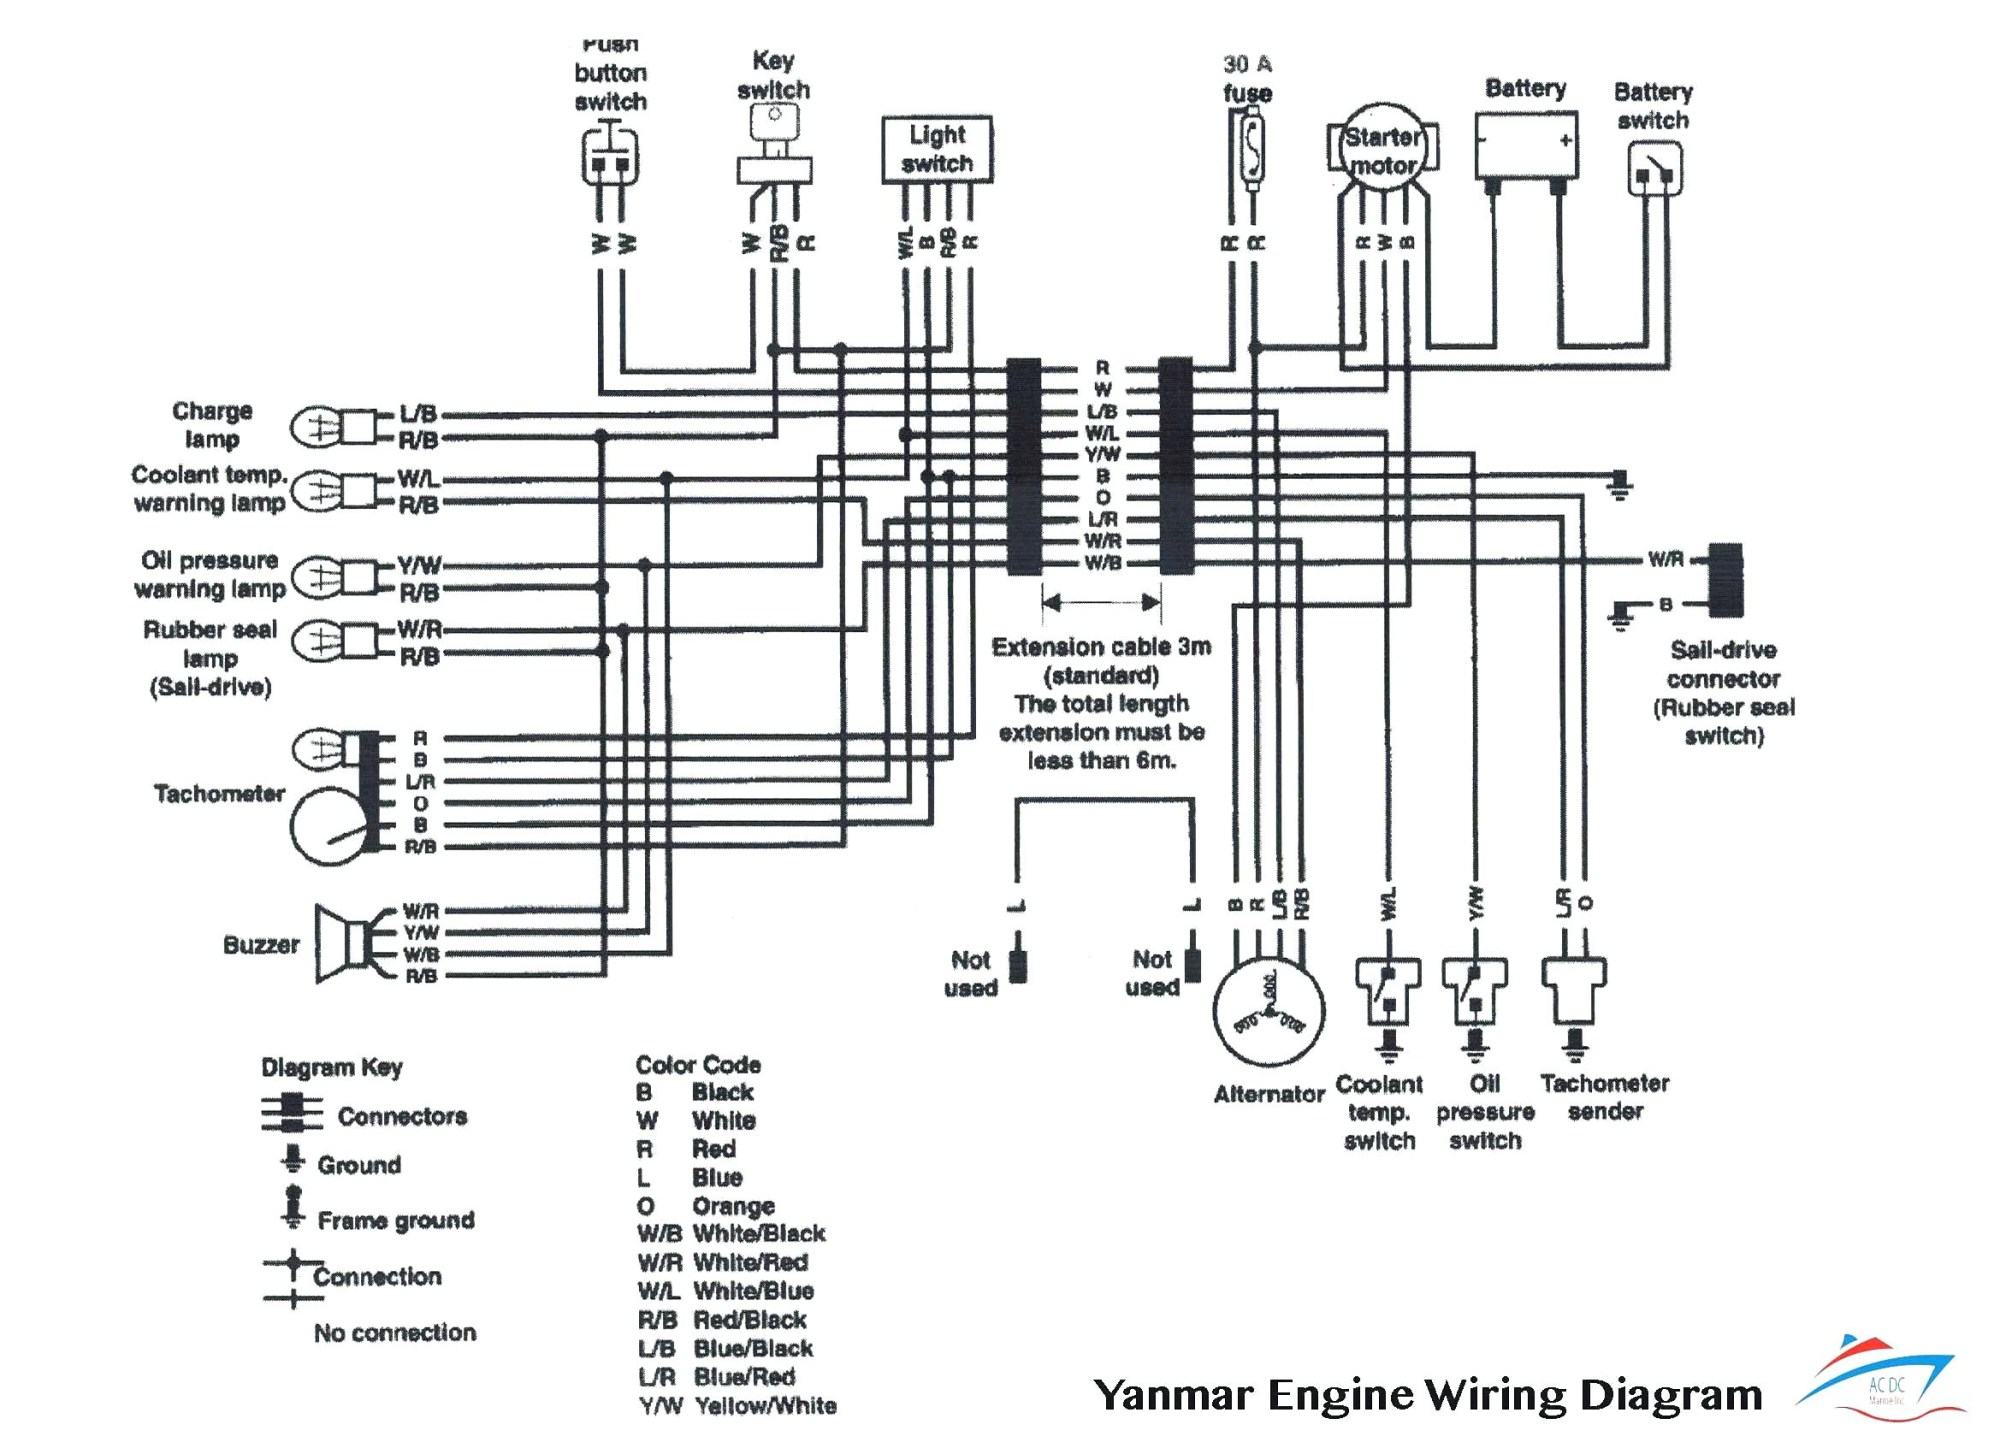 hight resolution of yale battery charger wiring diagram yale battery charger wiring diagram fresh fuel gauge wiring diagram